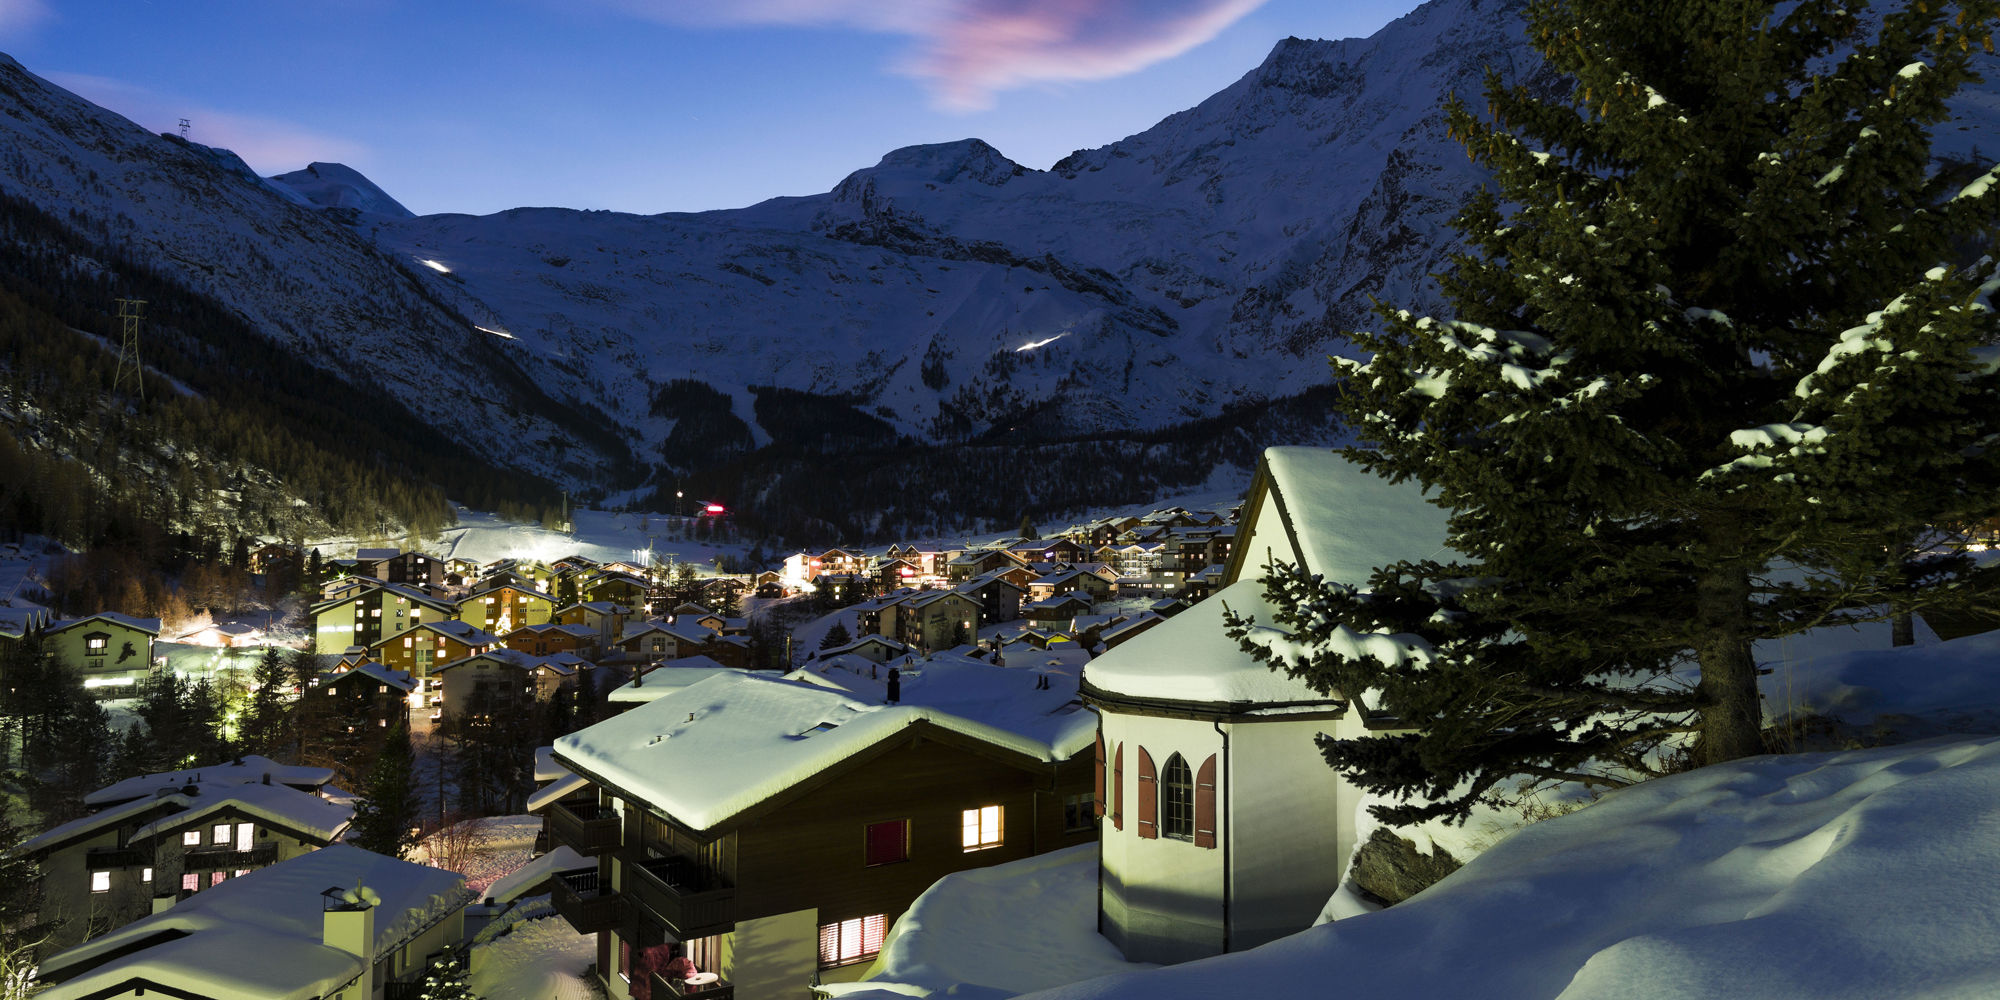 Saas-Fee at night